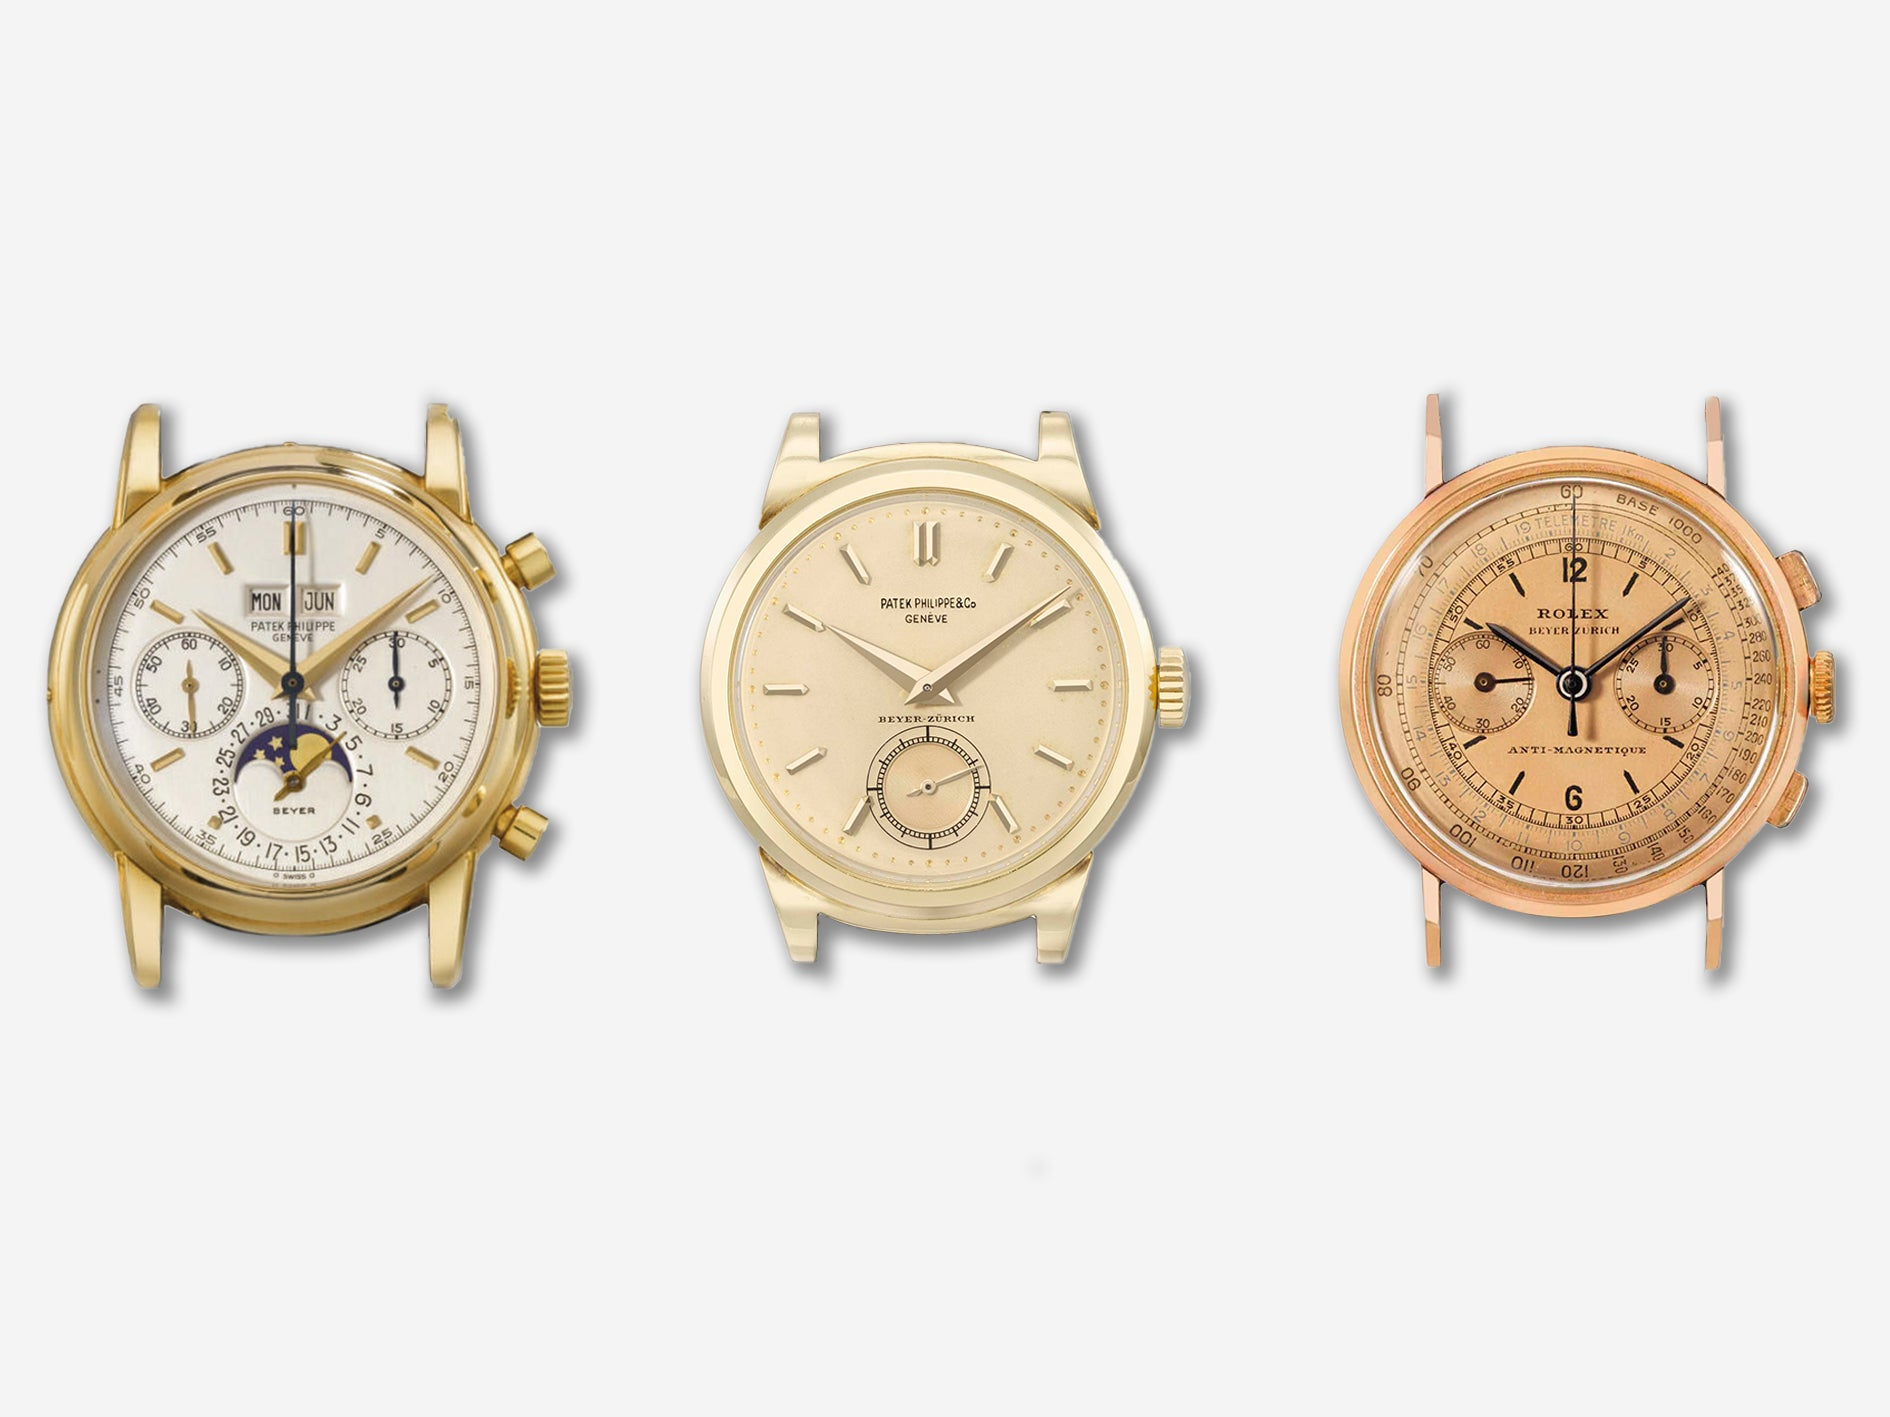 Patek Philippe ref. 2499 (left), a Patek Philippe ref. 1491 (center) and a Rolex ref. 3858 (right) all signed by Beyer for A Collected Man London